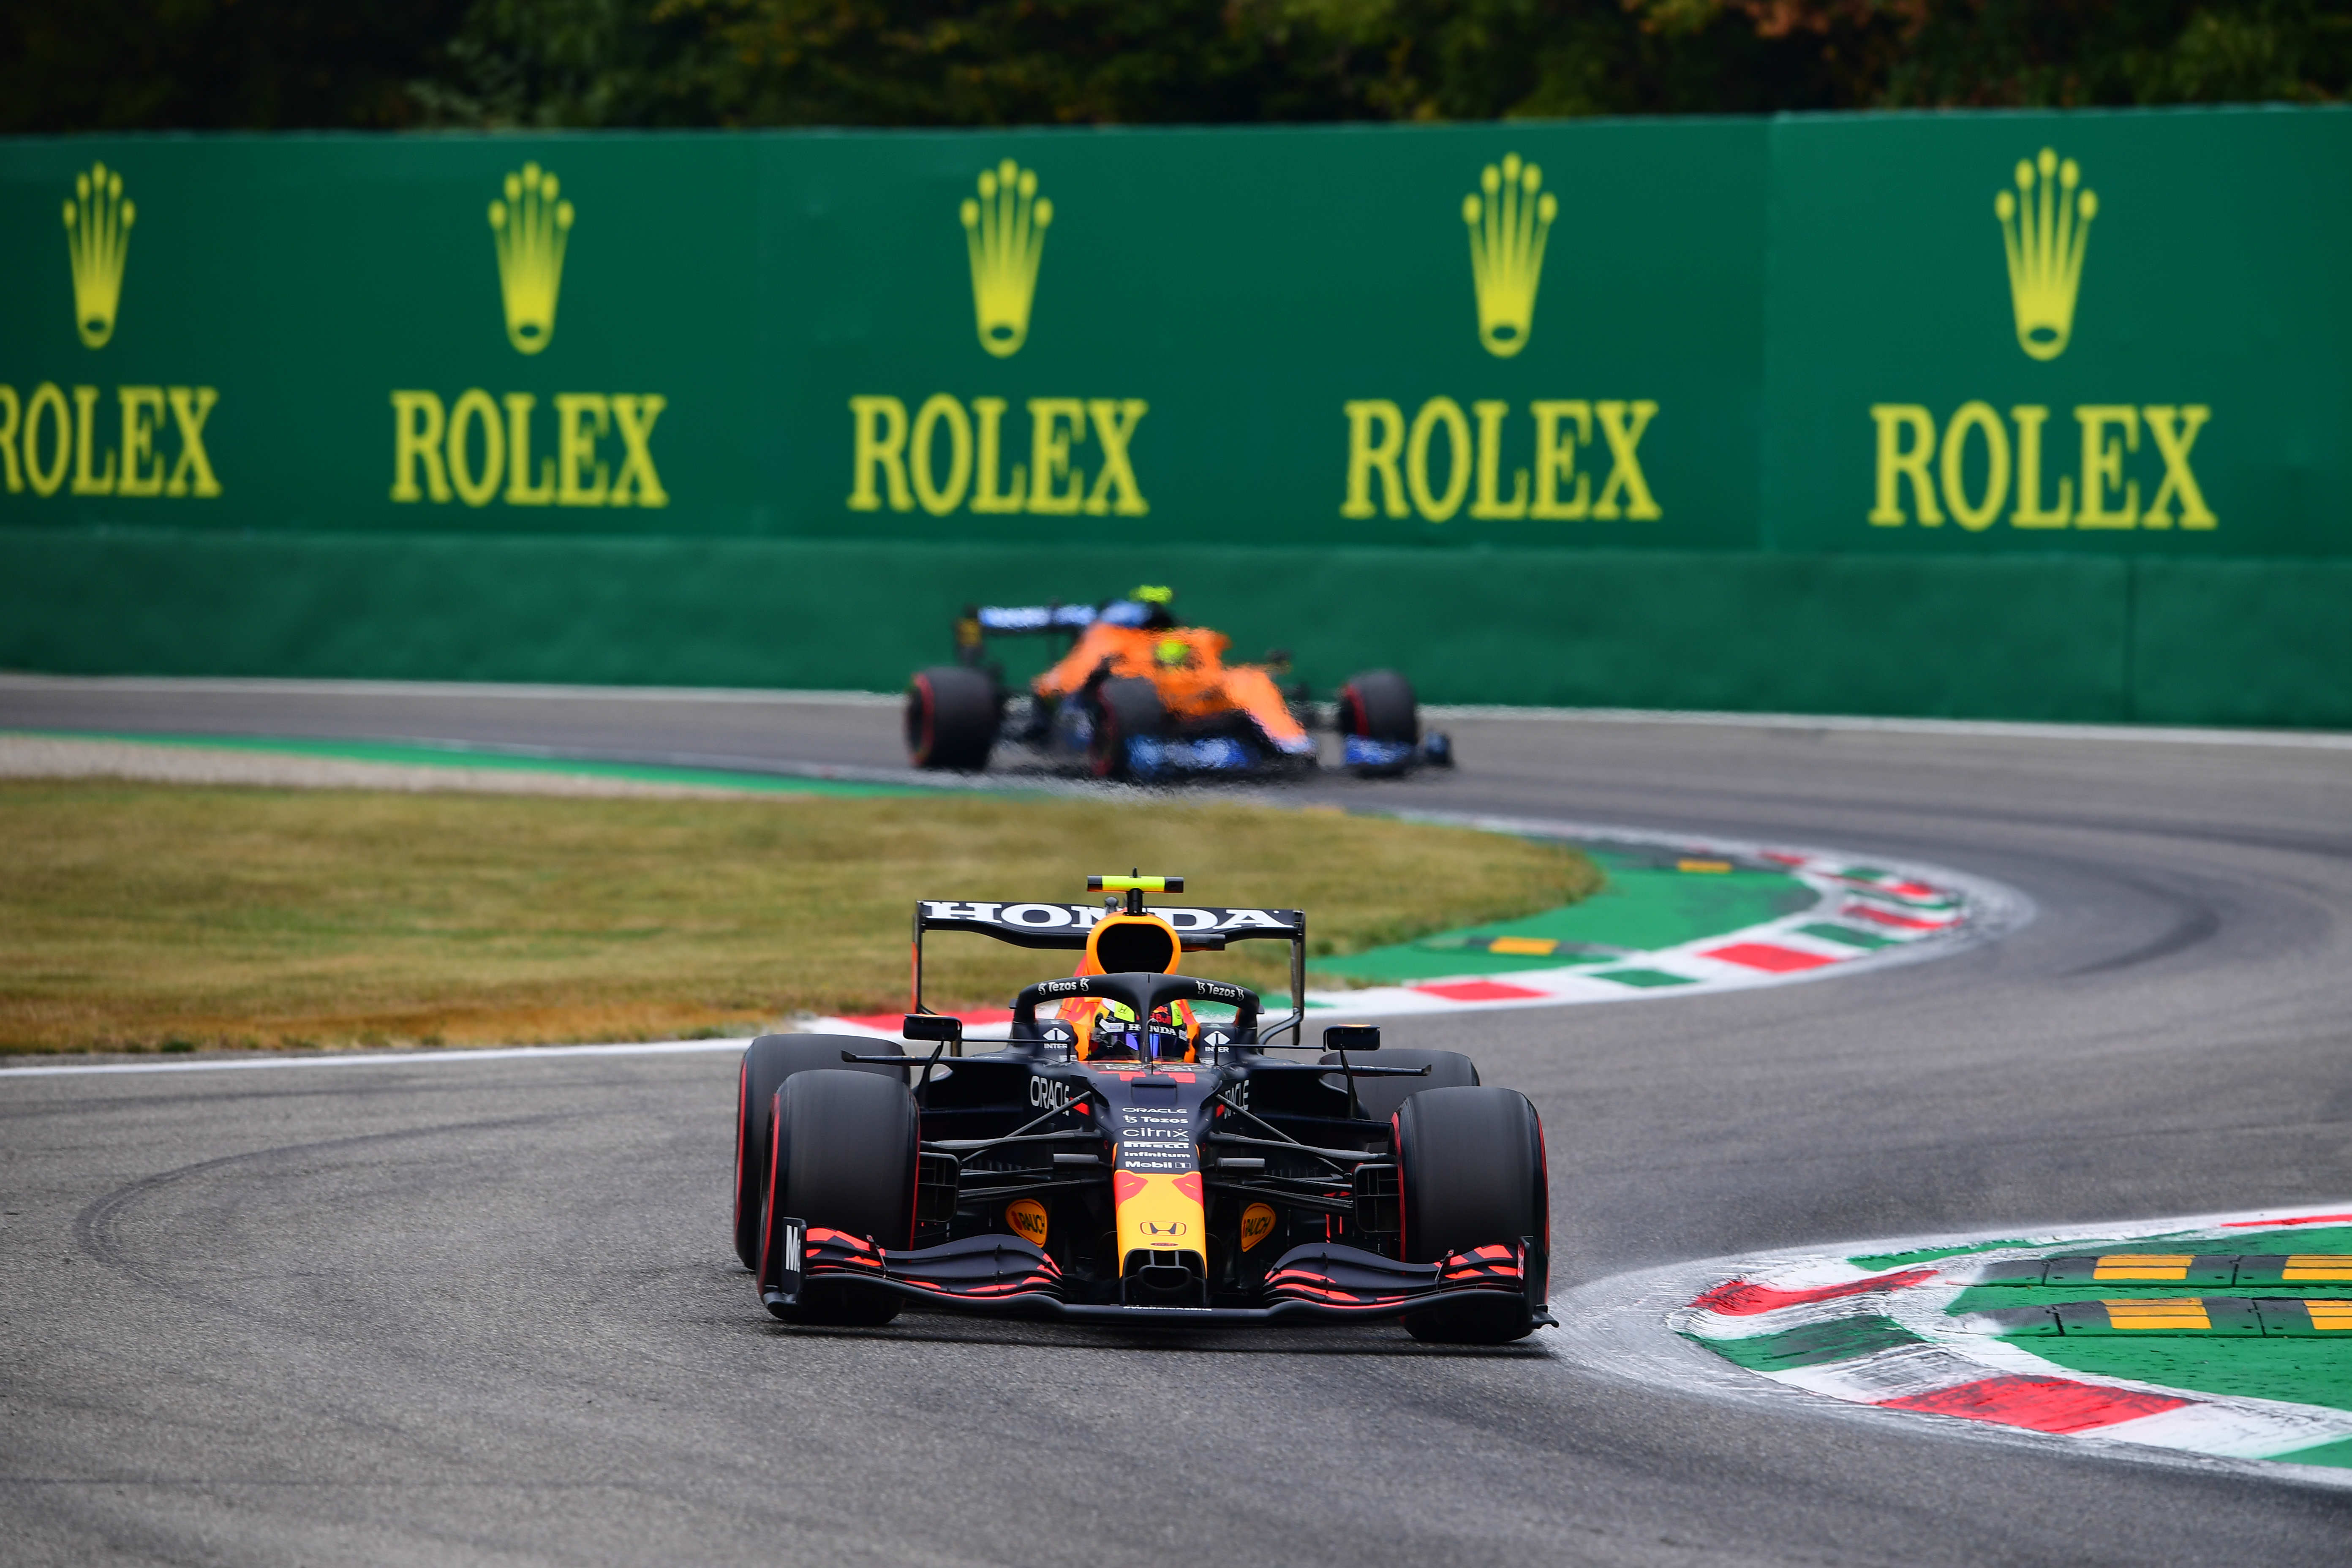 Sergio Perez of Red Bull Racing Honda drive his RB16B single-seater during qualifying of Italian GP, 14th round of Formula 1 World Championship in Autodromo Internazionale di Monza, in Monza, Lombardia, Italy, 10 September 2021